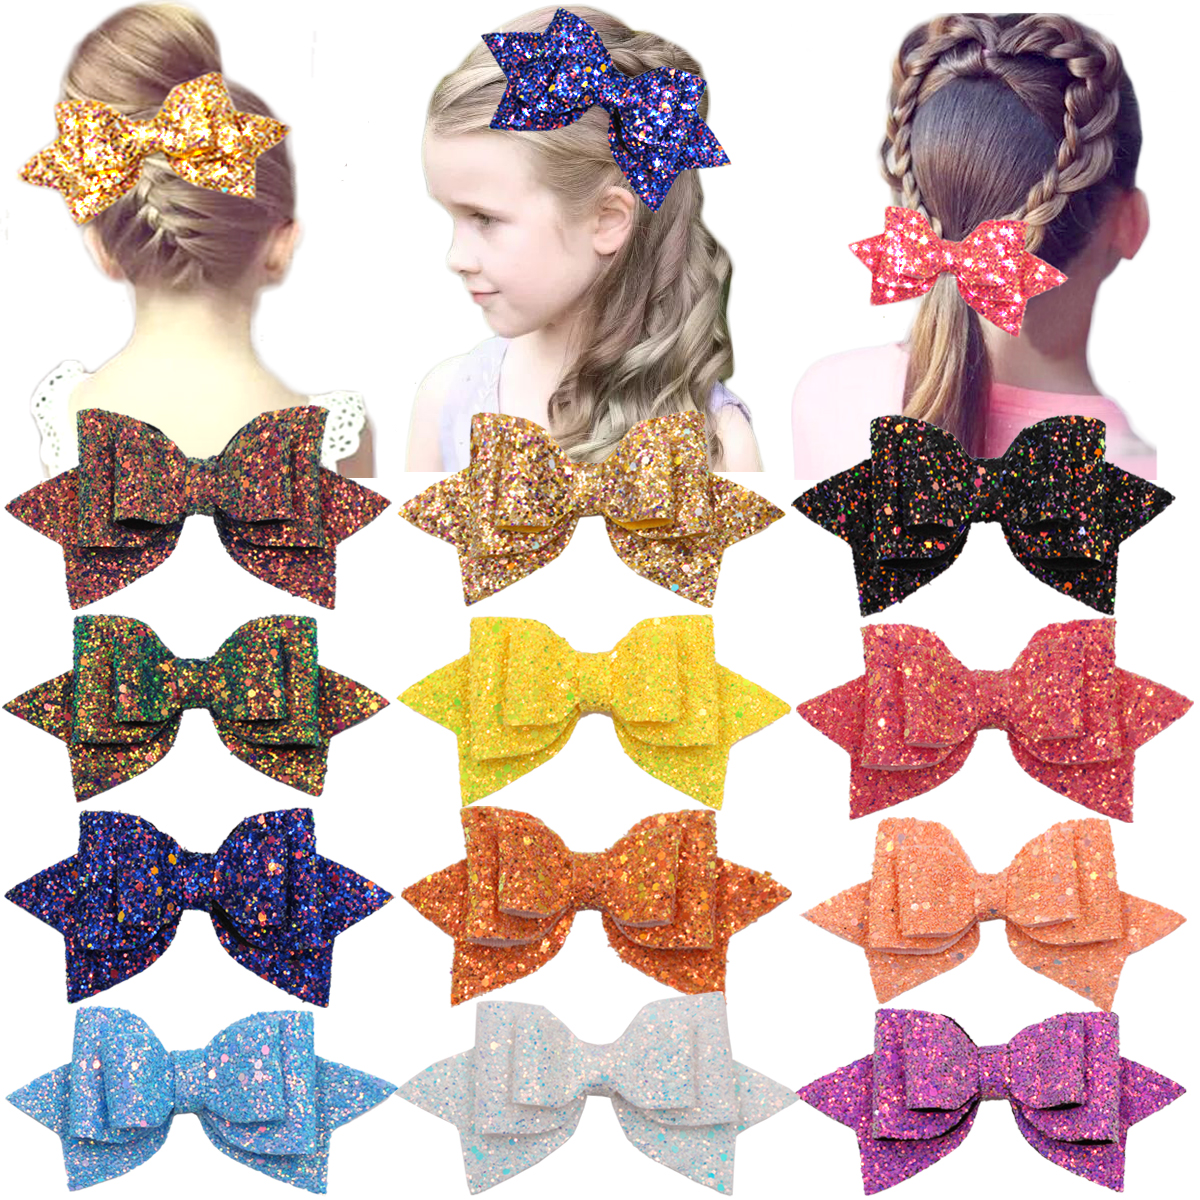 Hot Cute Bling Sparkly Glitter Sequins Big Hair Bows For Girls Alligator Clips